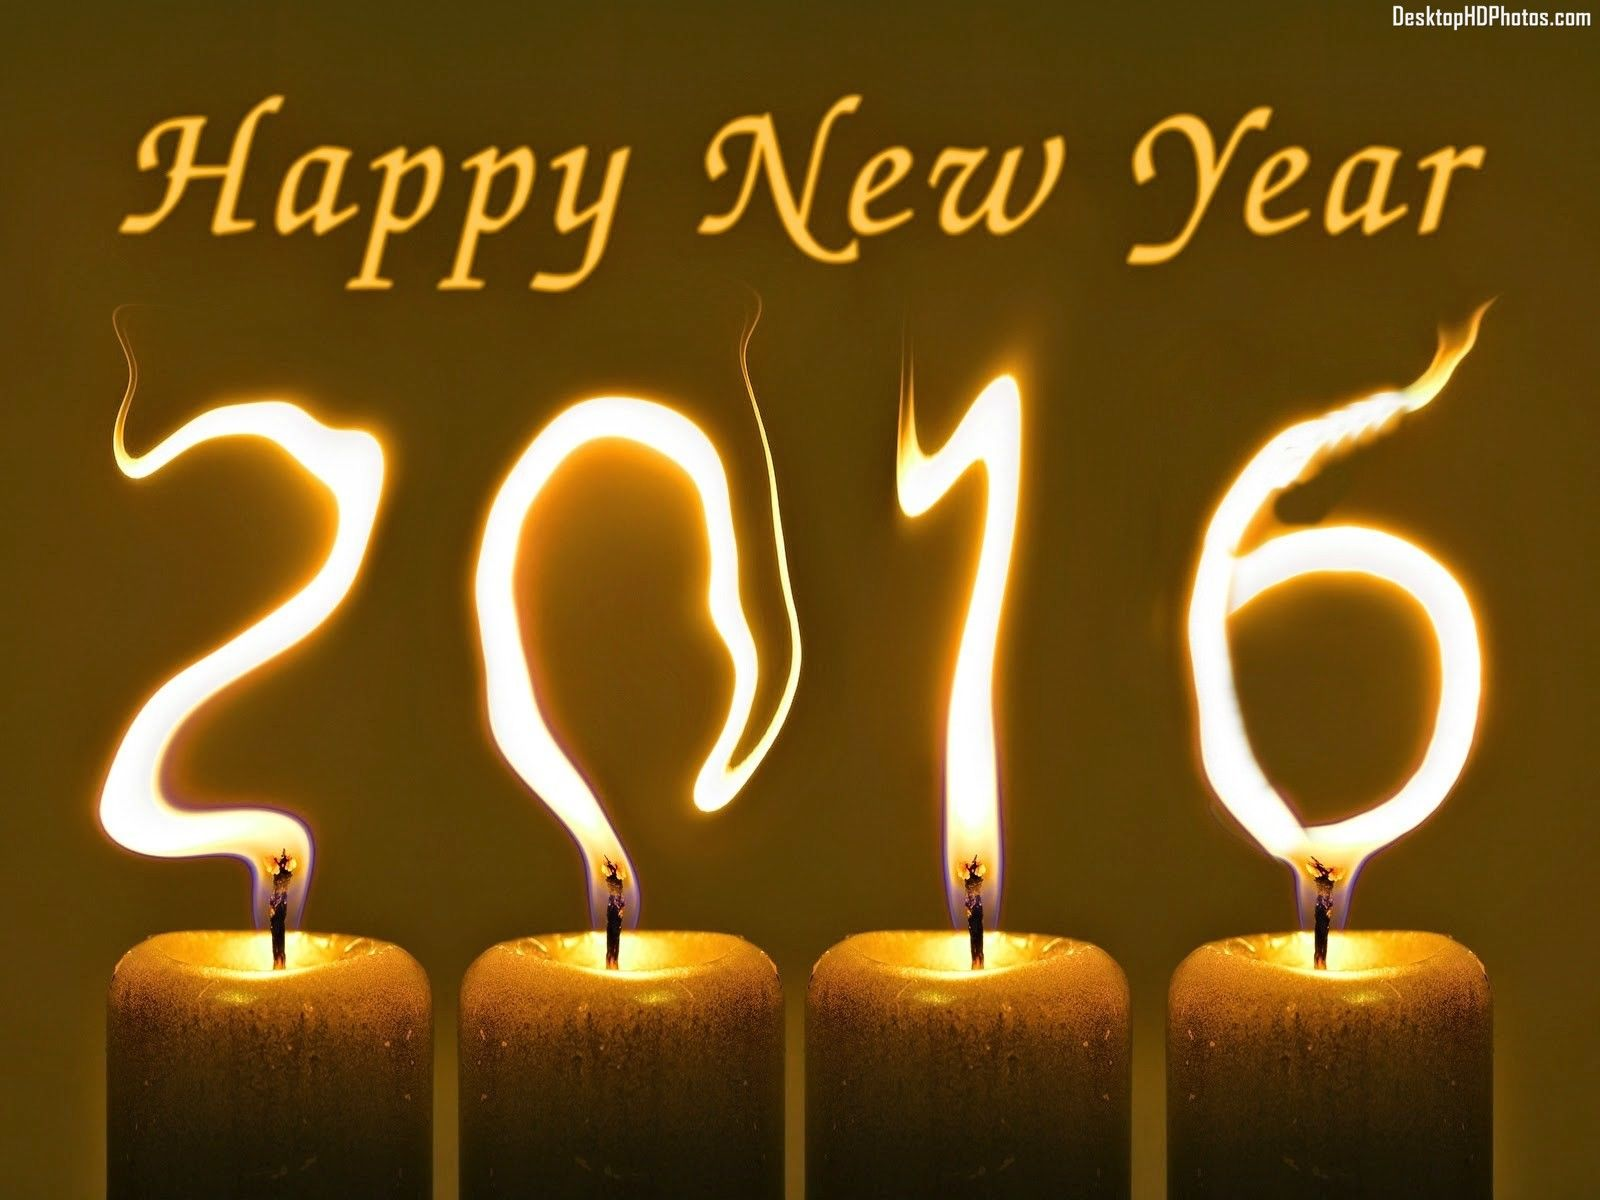 New Year Wishes For Pictures Photos And Images For